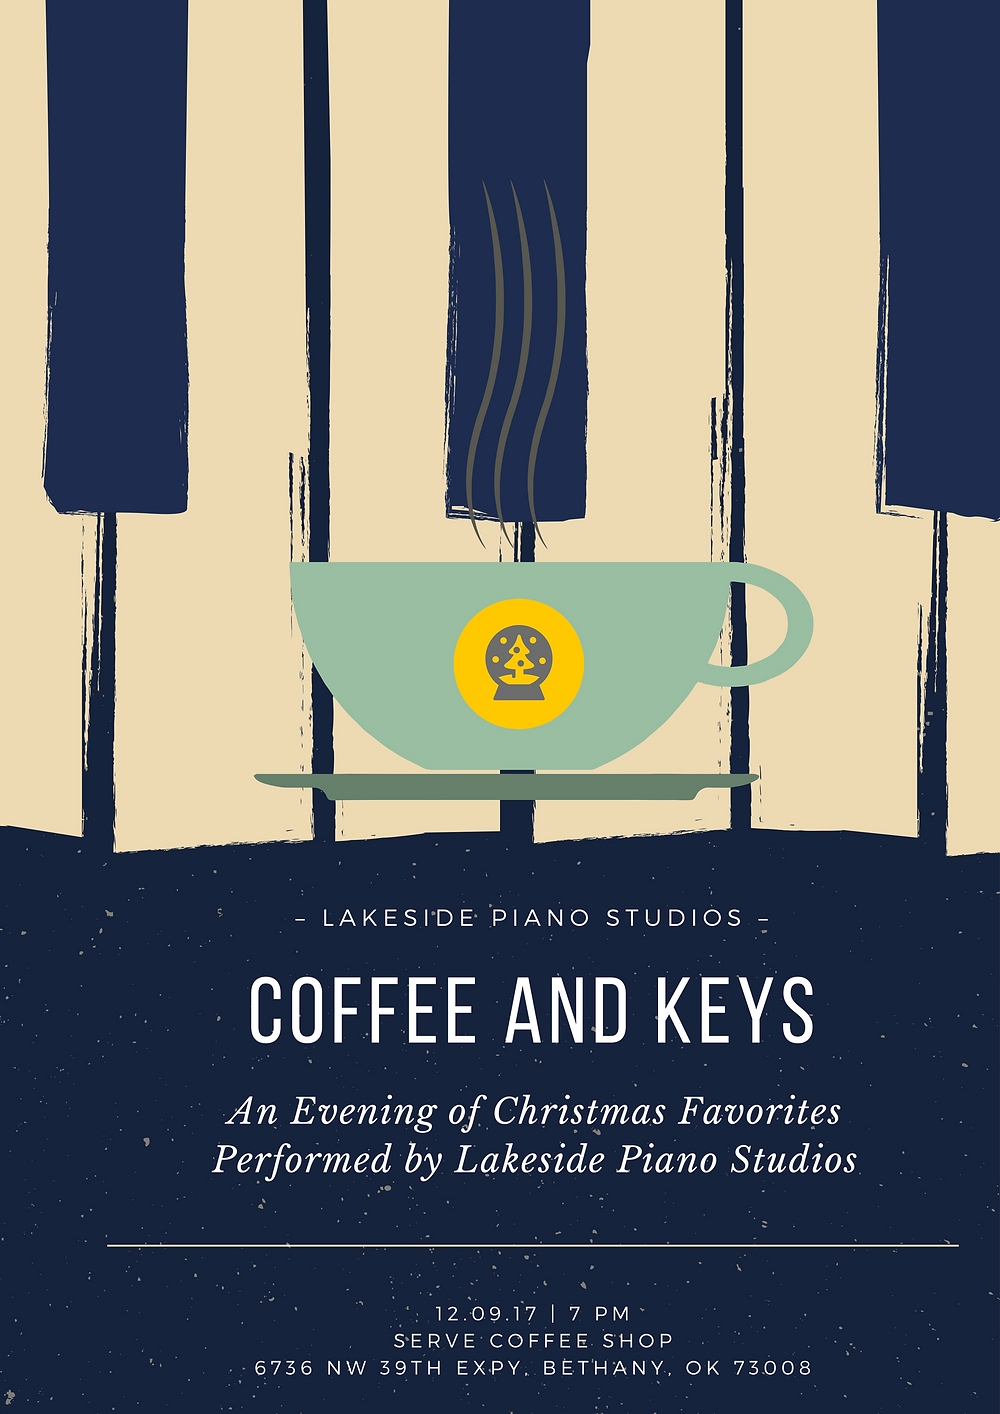 Coffee Shop Piano Recital Poster with holiday theme